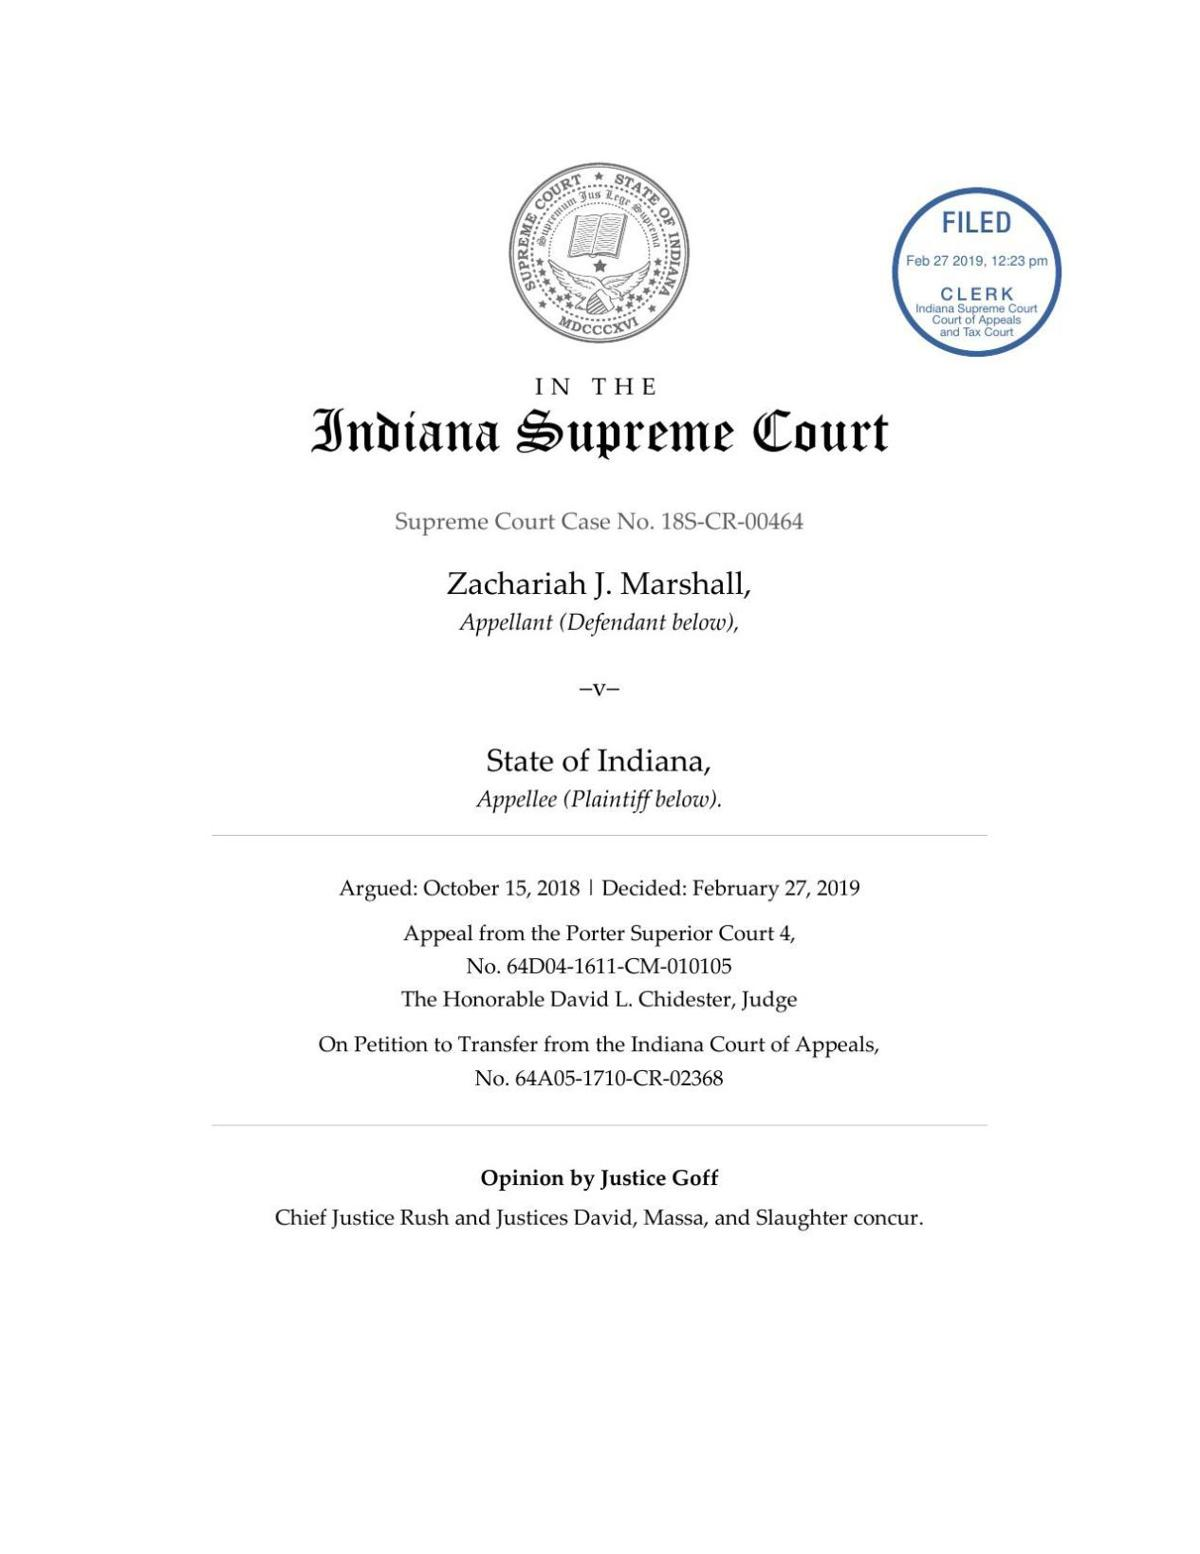 Marshall v. State ruling of Indiana Supreme Court